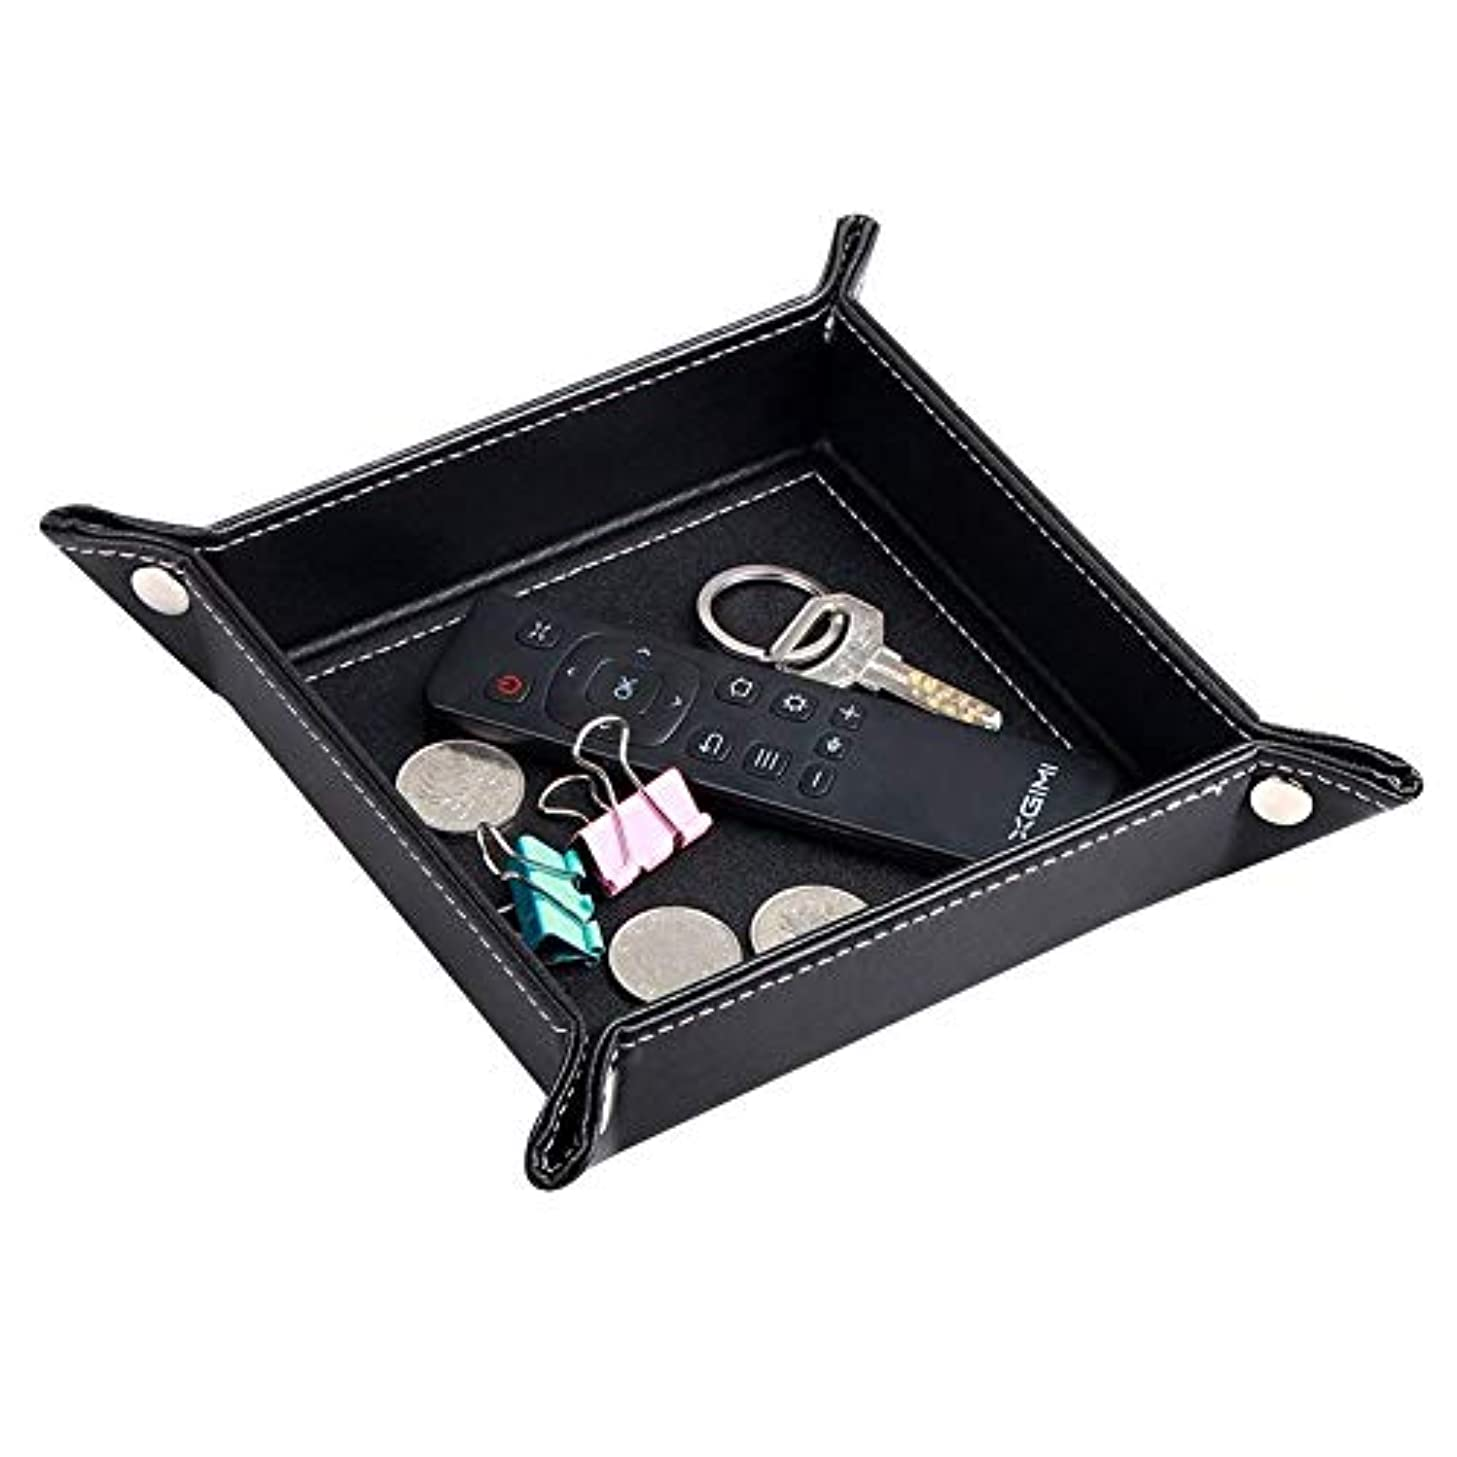 PUSU Desk Organizer Trays, Leatherette Collapsible Catchall Storage Valet Tray Office Pens Jewelry Makeup Keys Change Coins Dice Trinkets (Black)